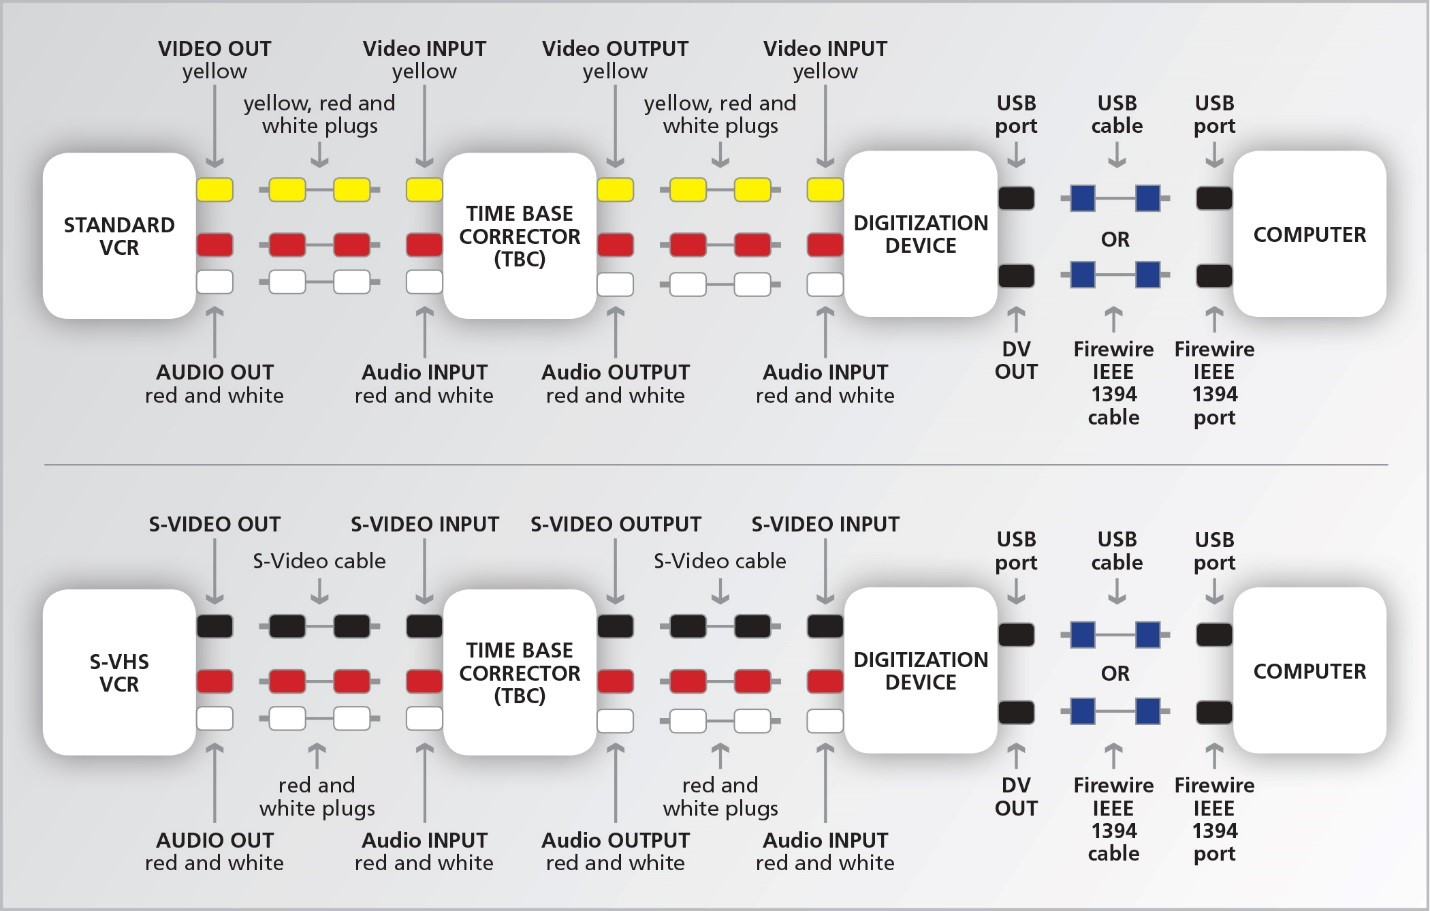 hight resolution of connection diagrams for digitization set up two note that the audio connections from the vcr or s vhs vcr can bypass the tbc and